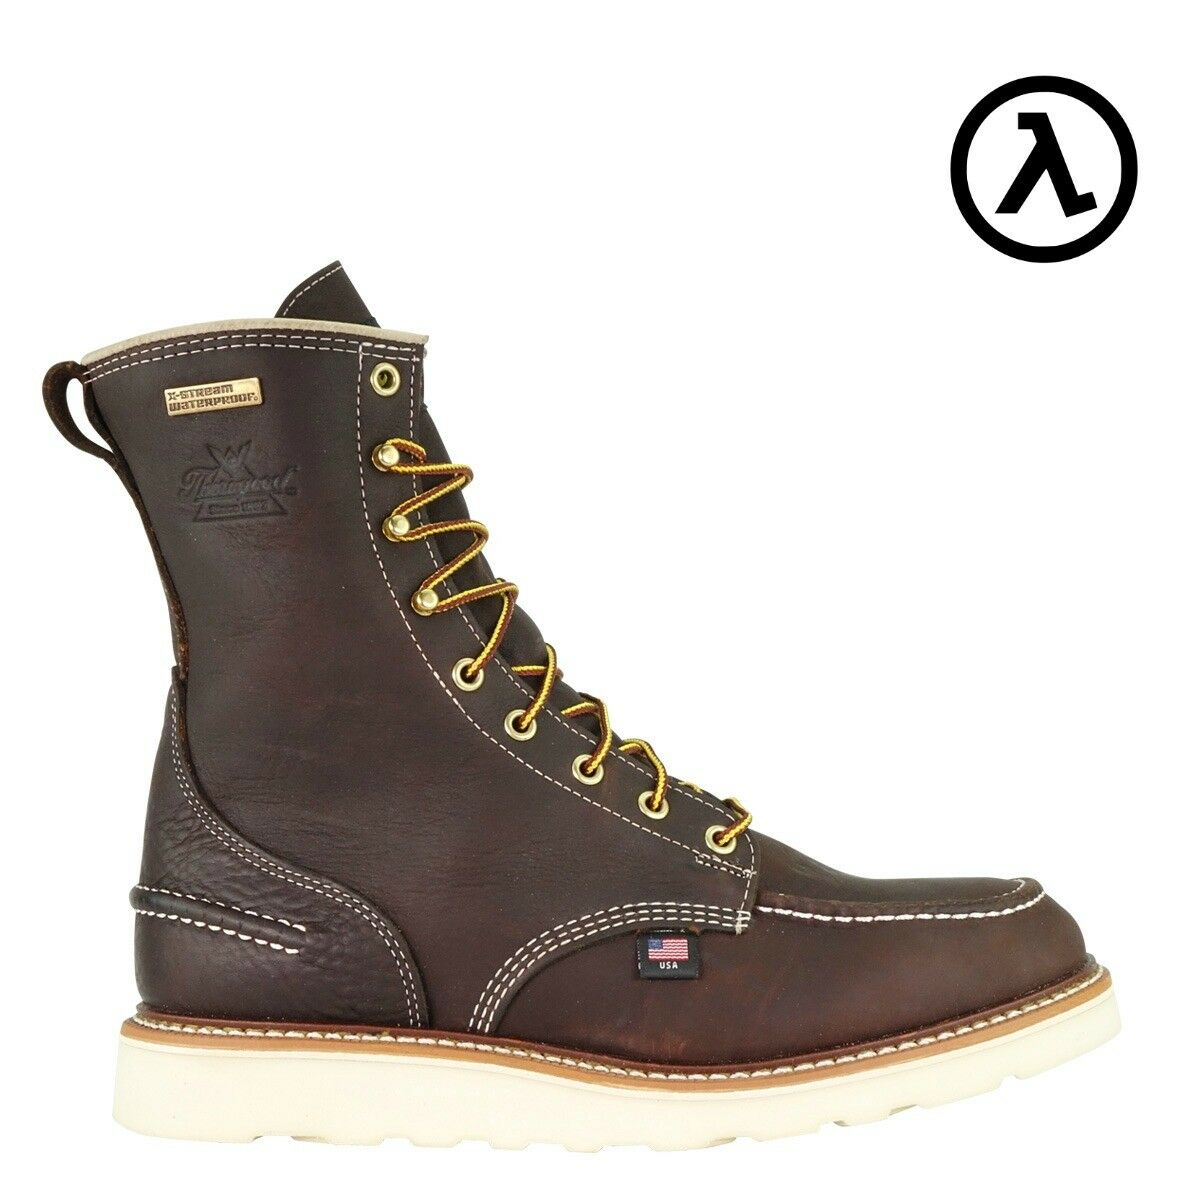 THgoldGOOD 8  MOC TOE ST WATERPROOF USA-MADE WORK BOOTS 804-3800- ALL SIZES